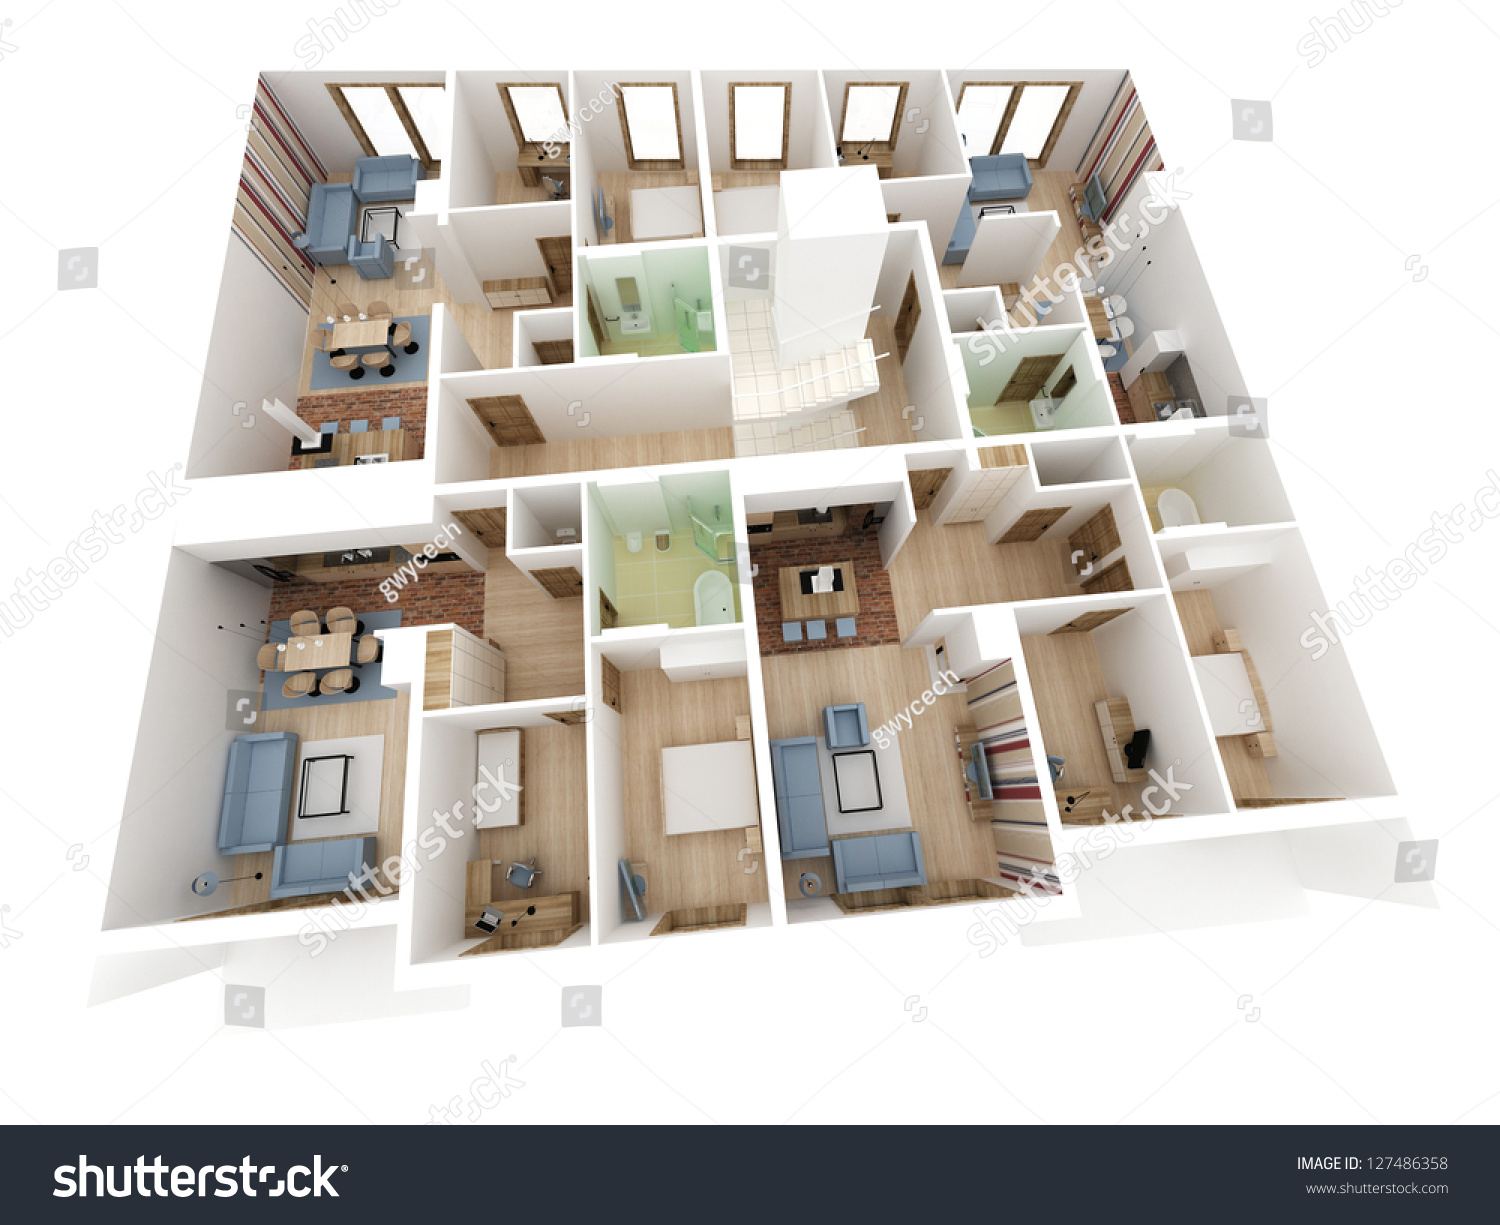 Apartments level top view building design stock for Apartment design process